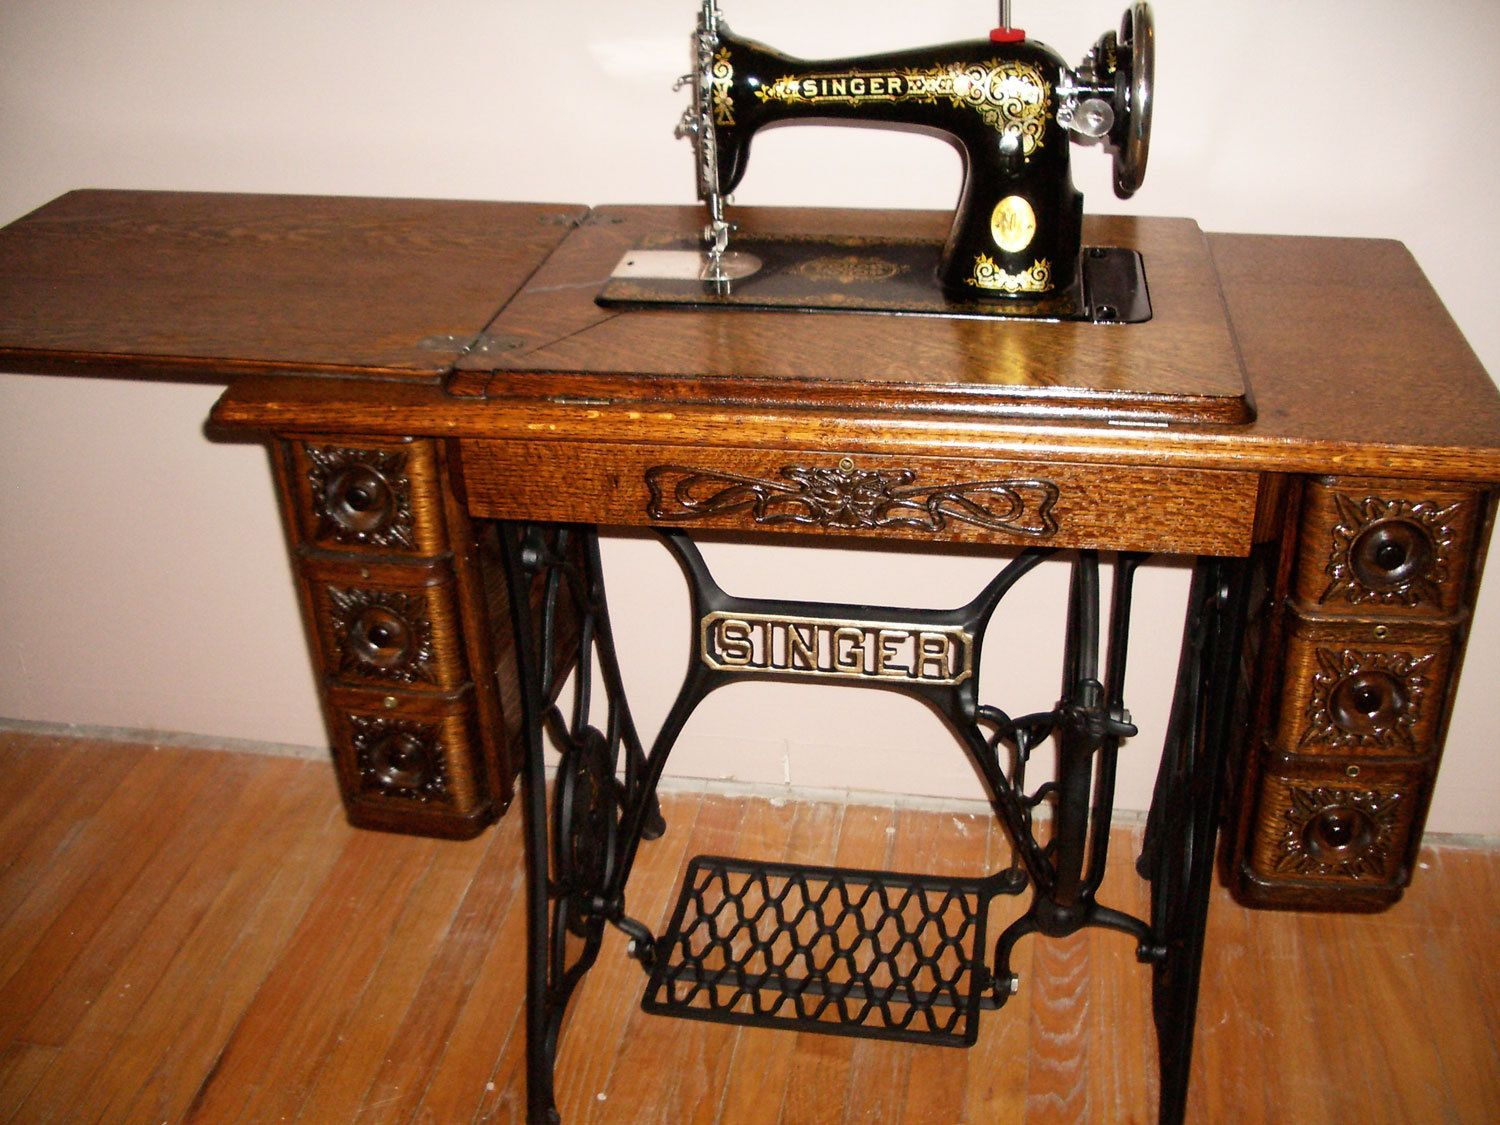 Singer treadle sewing machine - one similar to the one my mom made ...